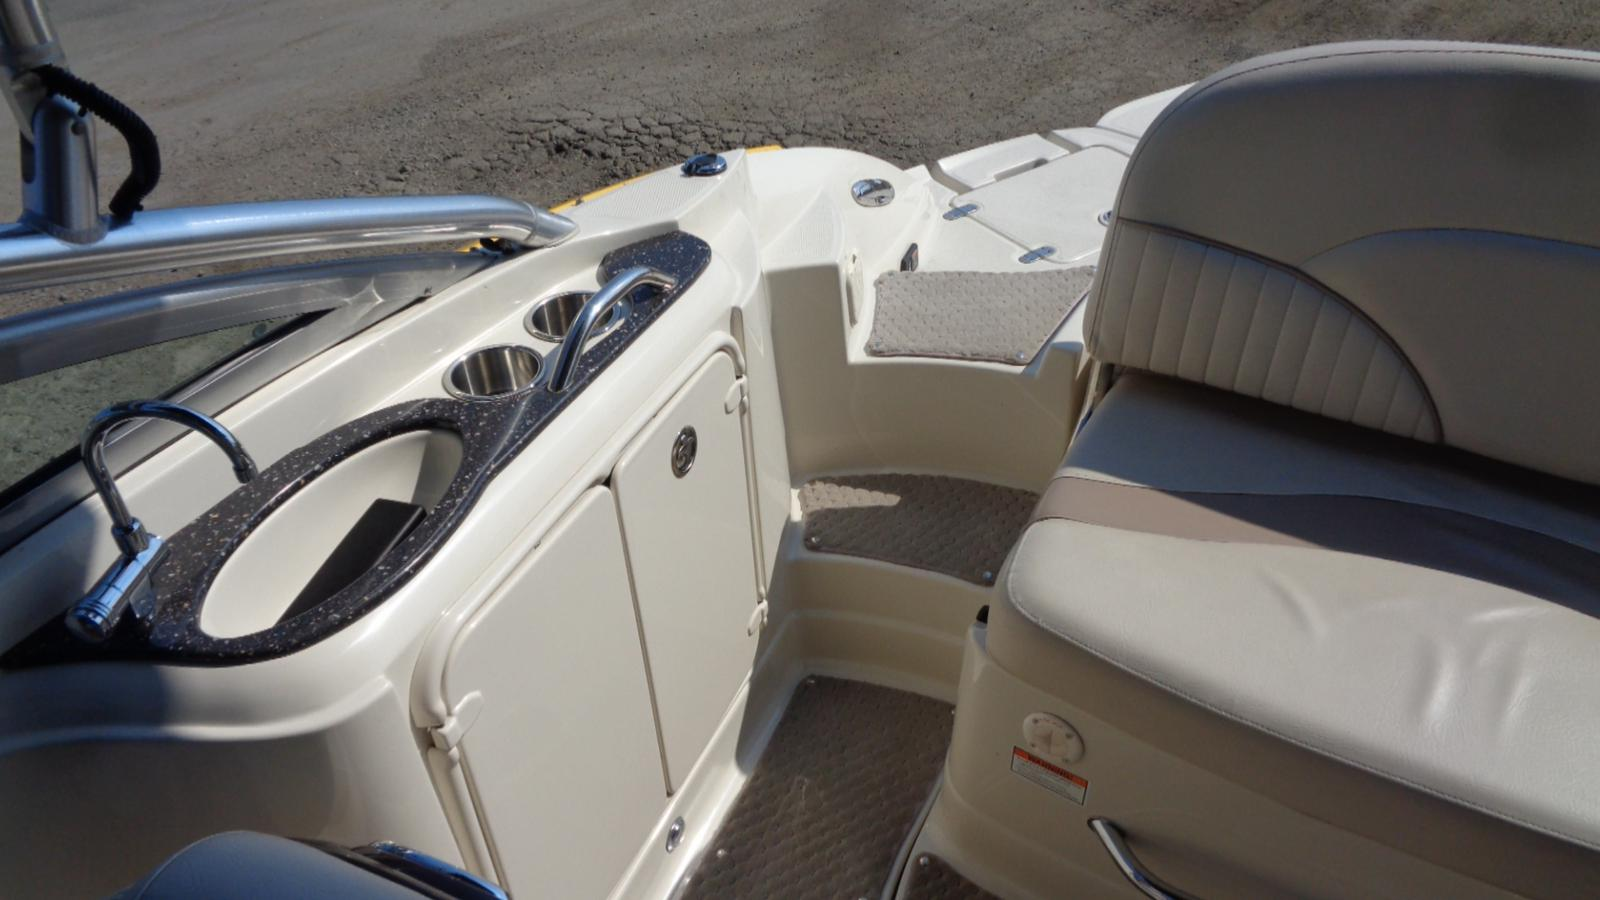 2007 Azure boat for sale, model of the boat is AZ 220 & Image # 9 of 15